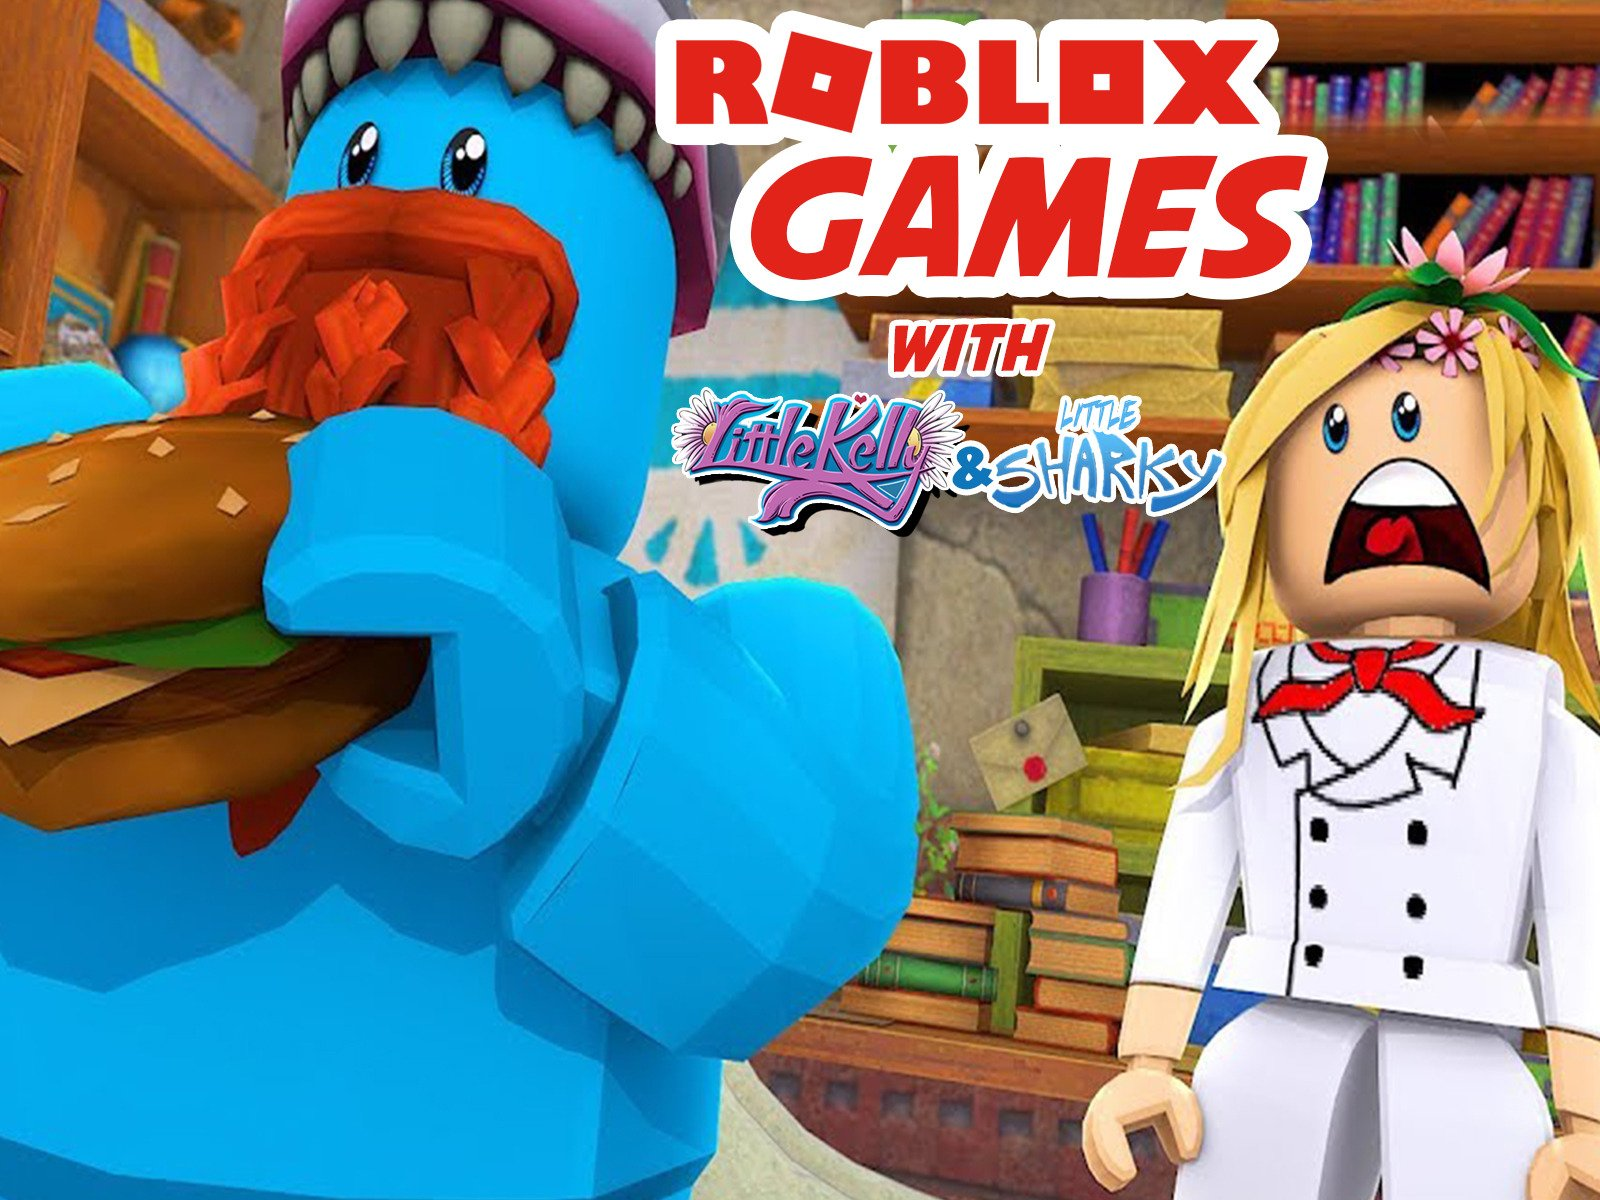 Clip: Roblox Games with Little Kelly & Little Sharky - Season 1